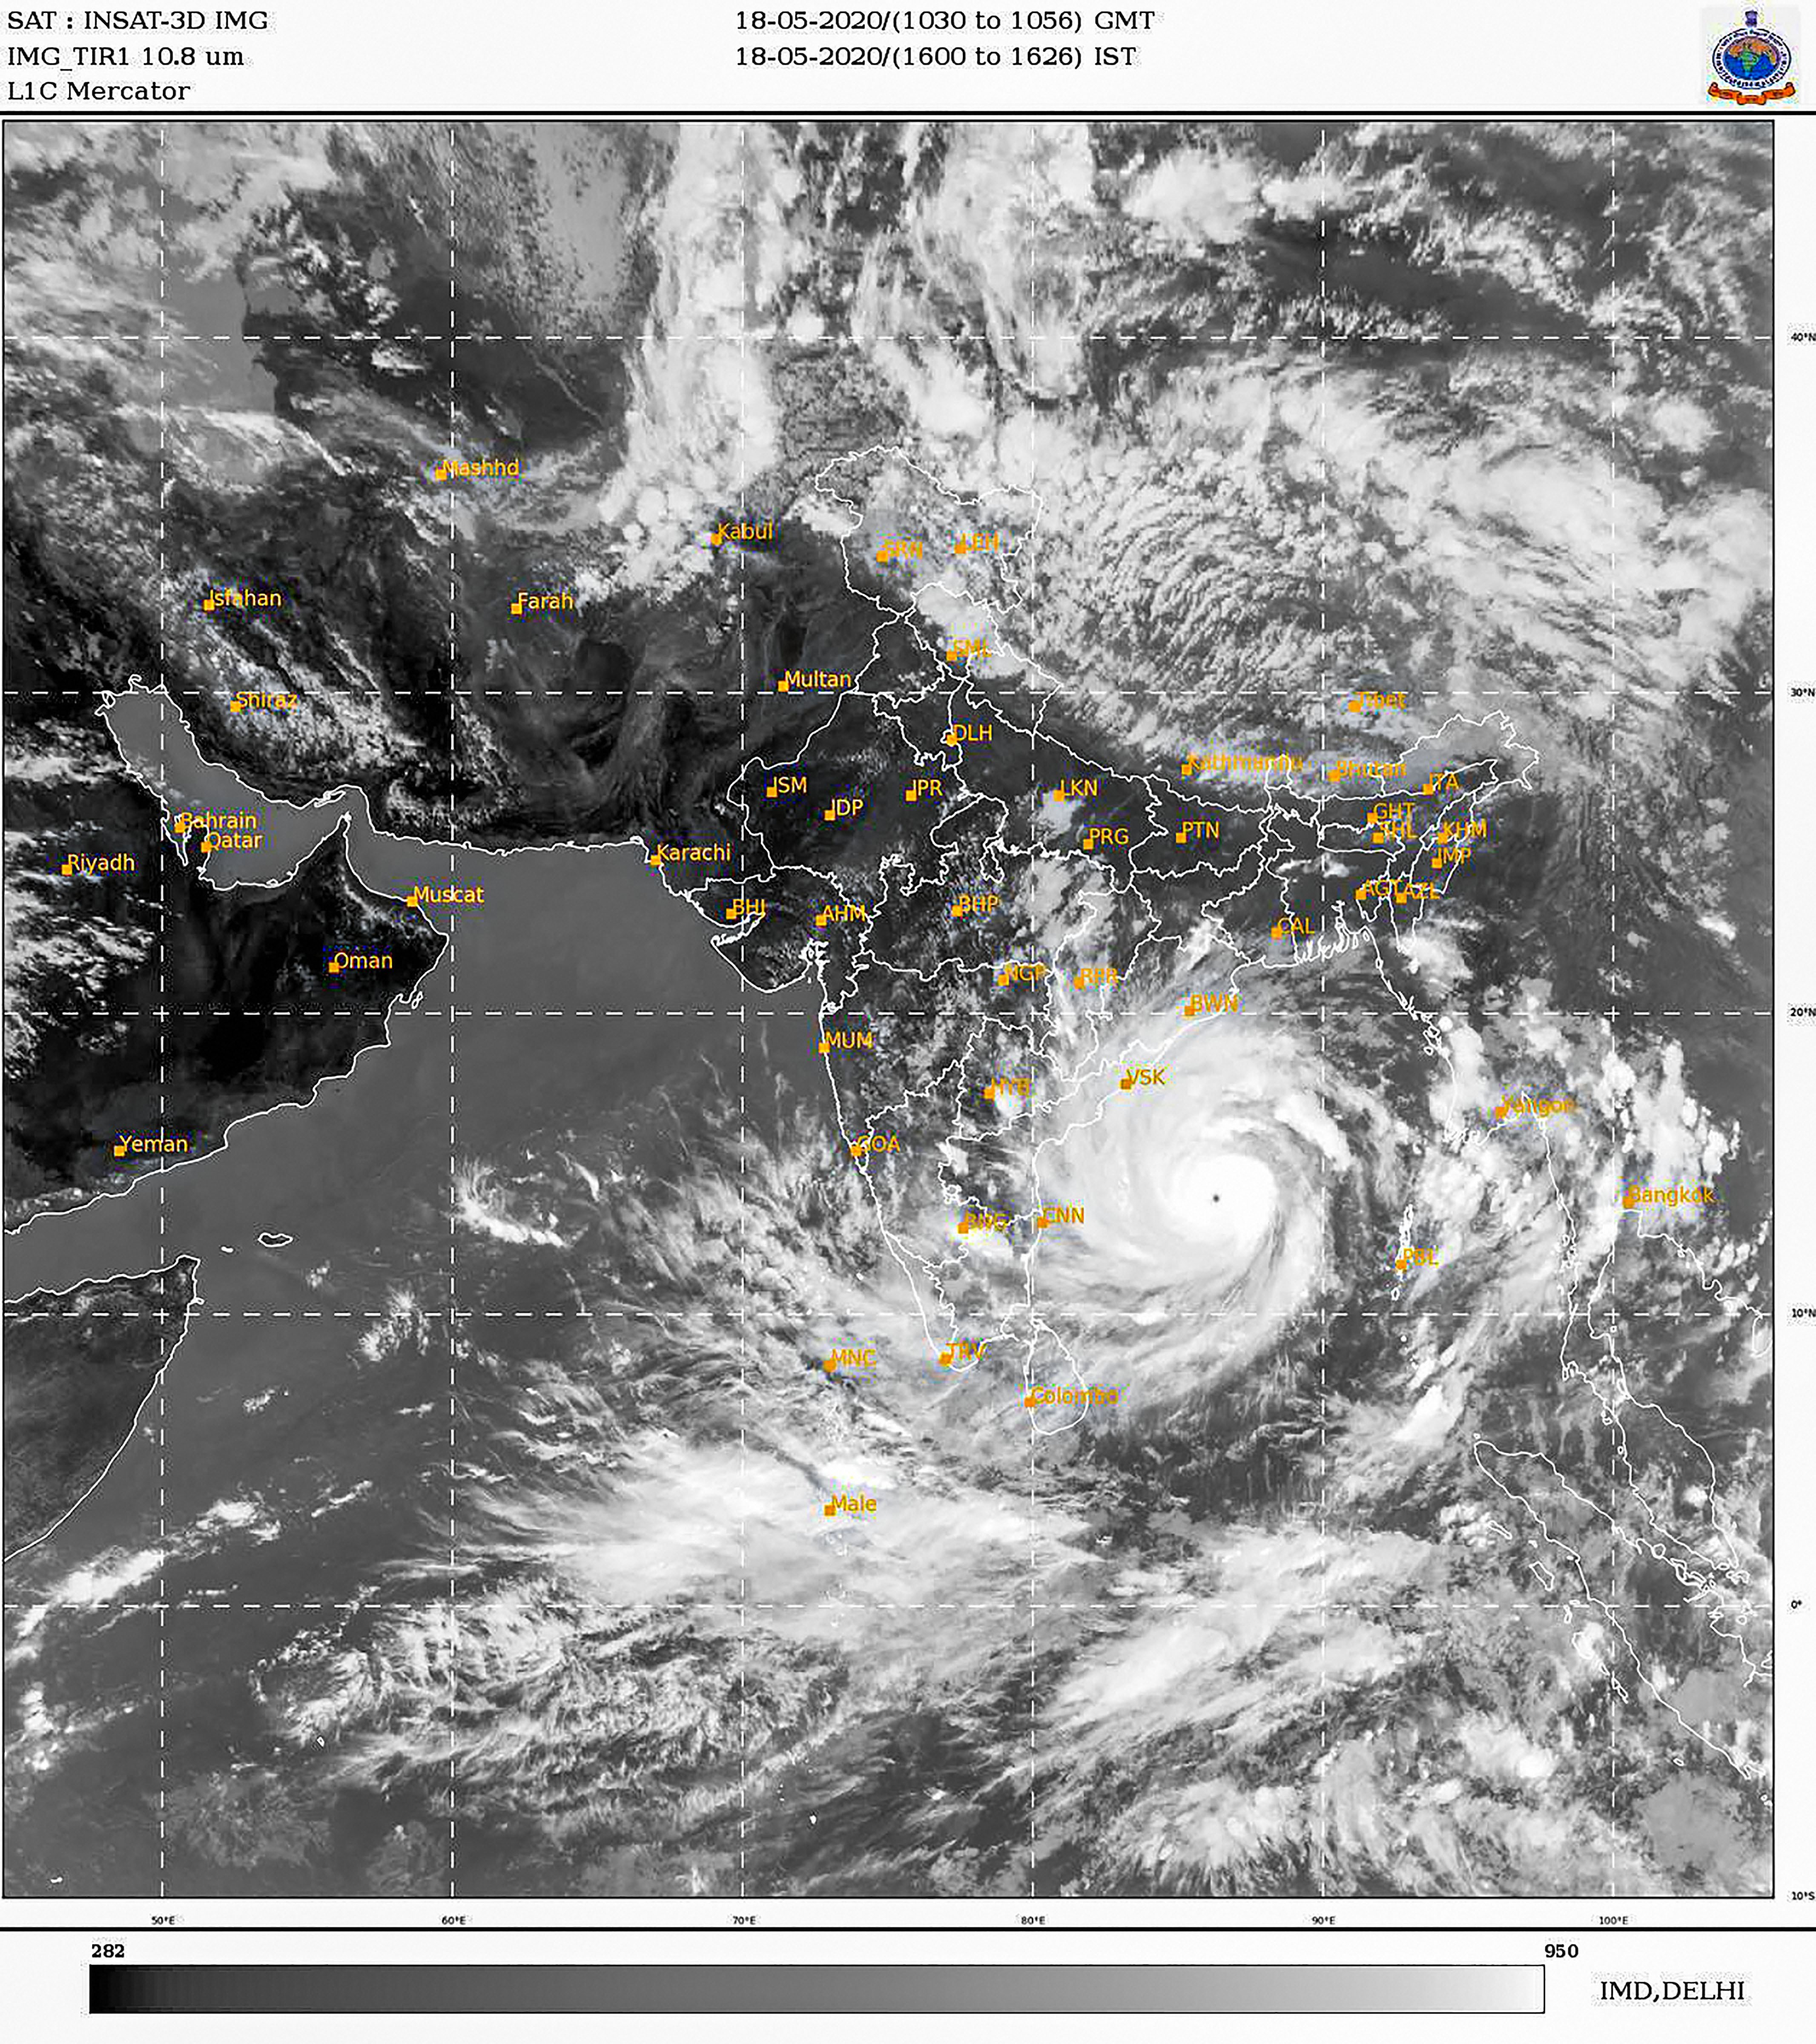 In this satellite image taken from India Meteorological Department (IMD) at 16:20 IST shows Cyclone Amphan along the costal areas of Bay of Bengal. As per IMD, Amphan intensified into extremely severe cyclonic storm and is likely to become super cyclone.